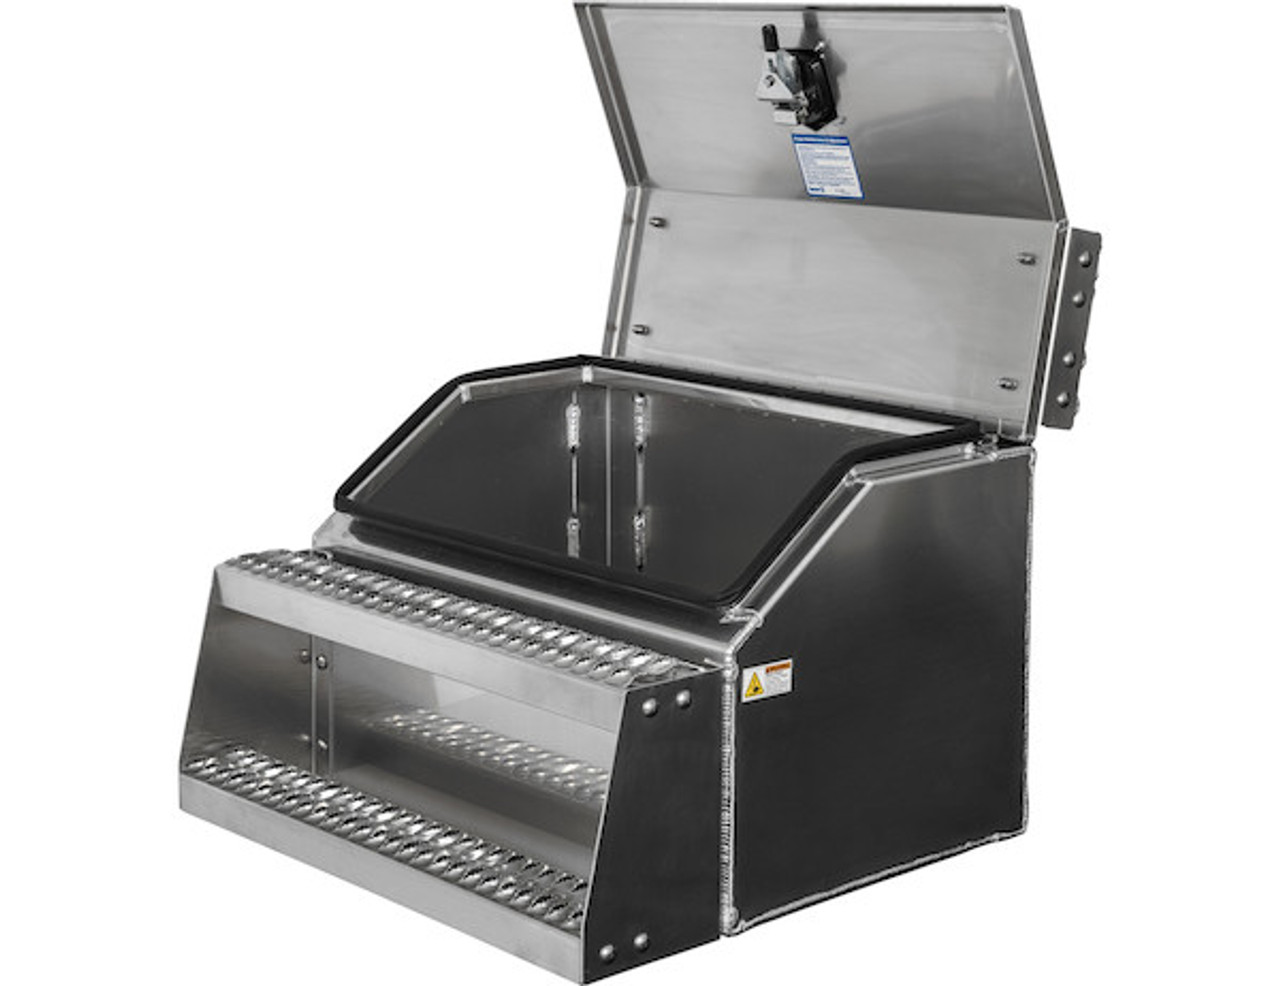 1705283 BUYERS PRODUCTS WideOpen™ Class 8 Step Tool Box For Semi Trucks - 30 Inch Width 2